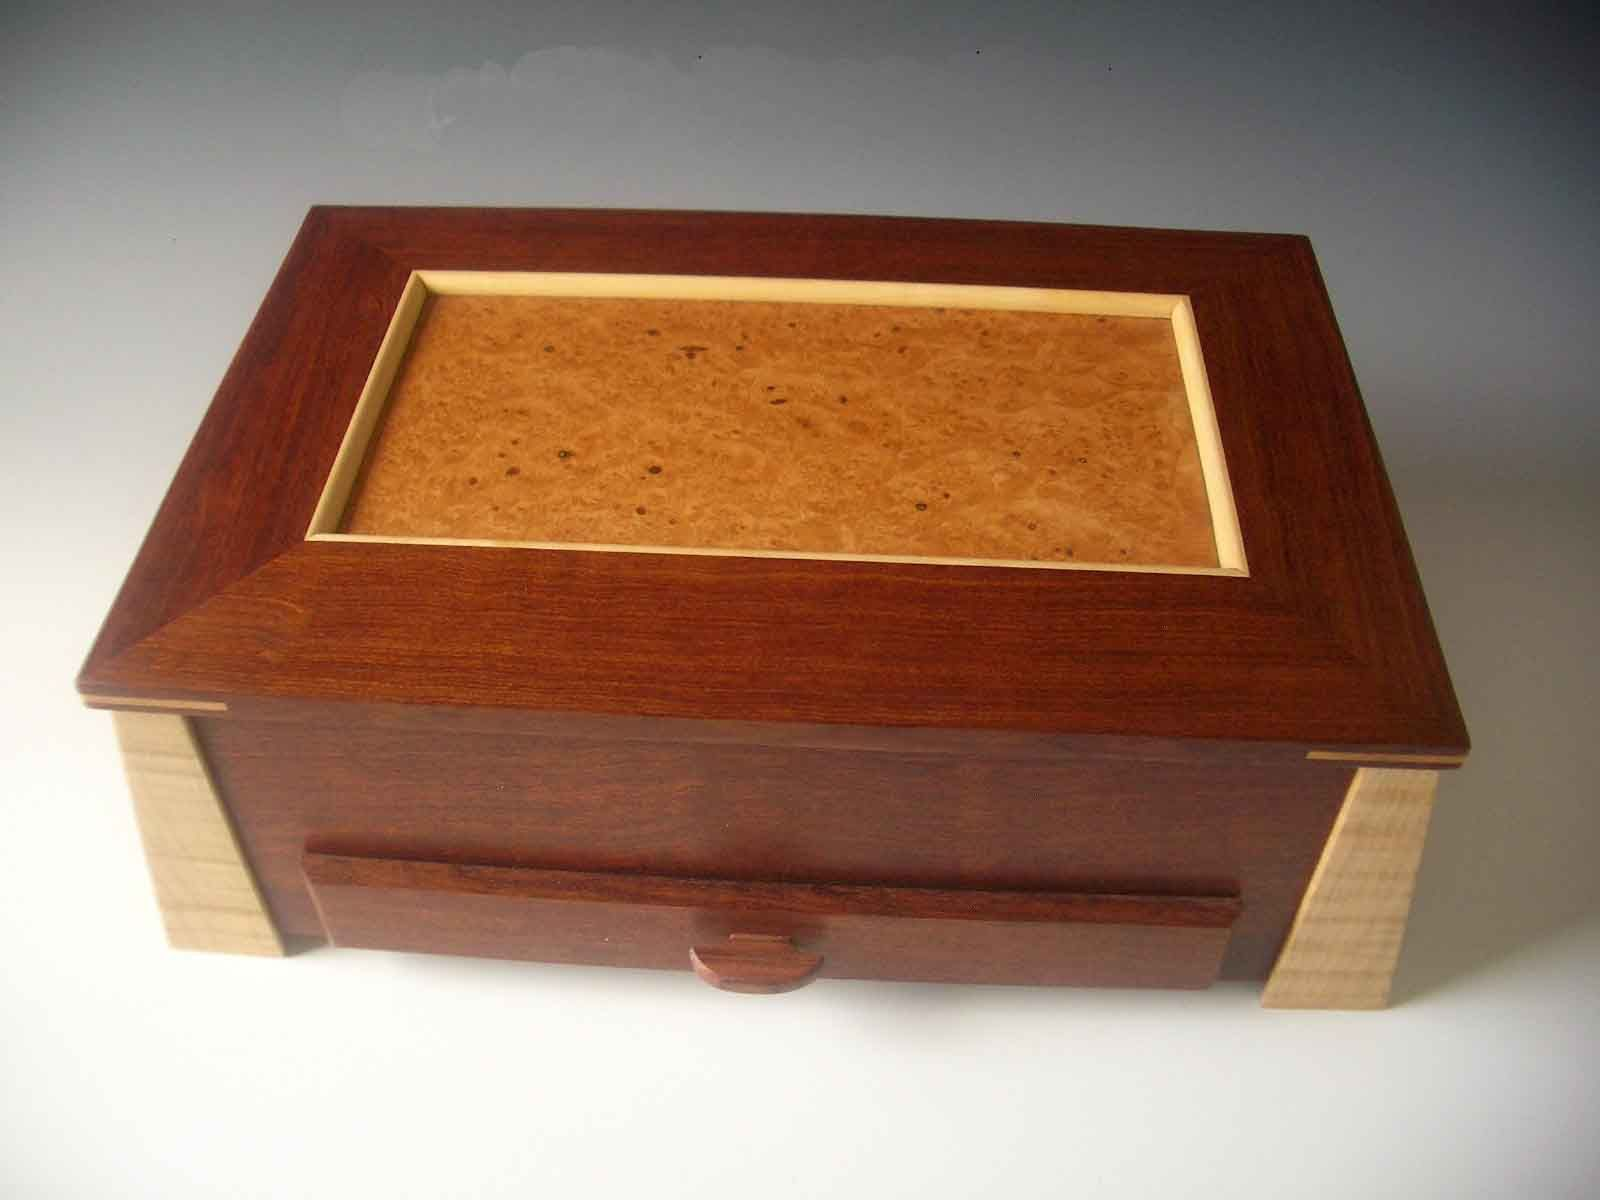 Boxshaped jewelry box with angled legs a lid that lifts up and a